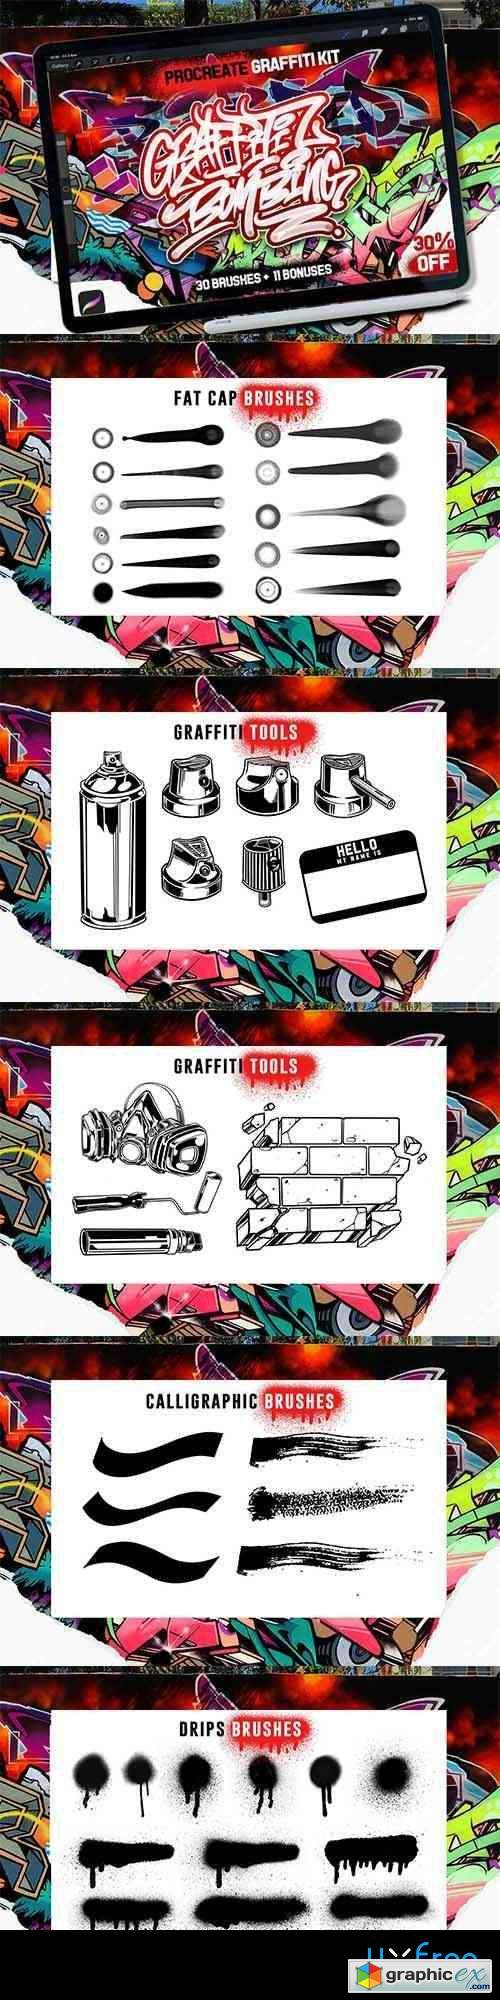 PROCREATE GRAFFITI BOMBING